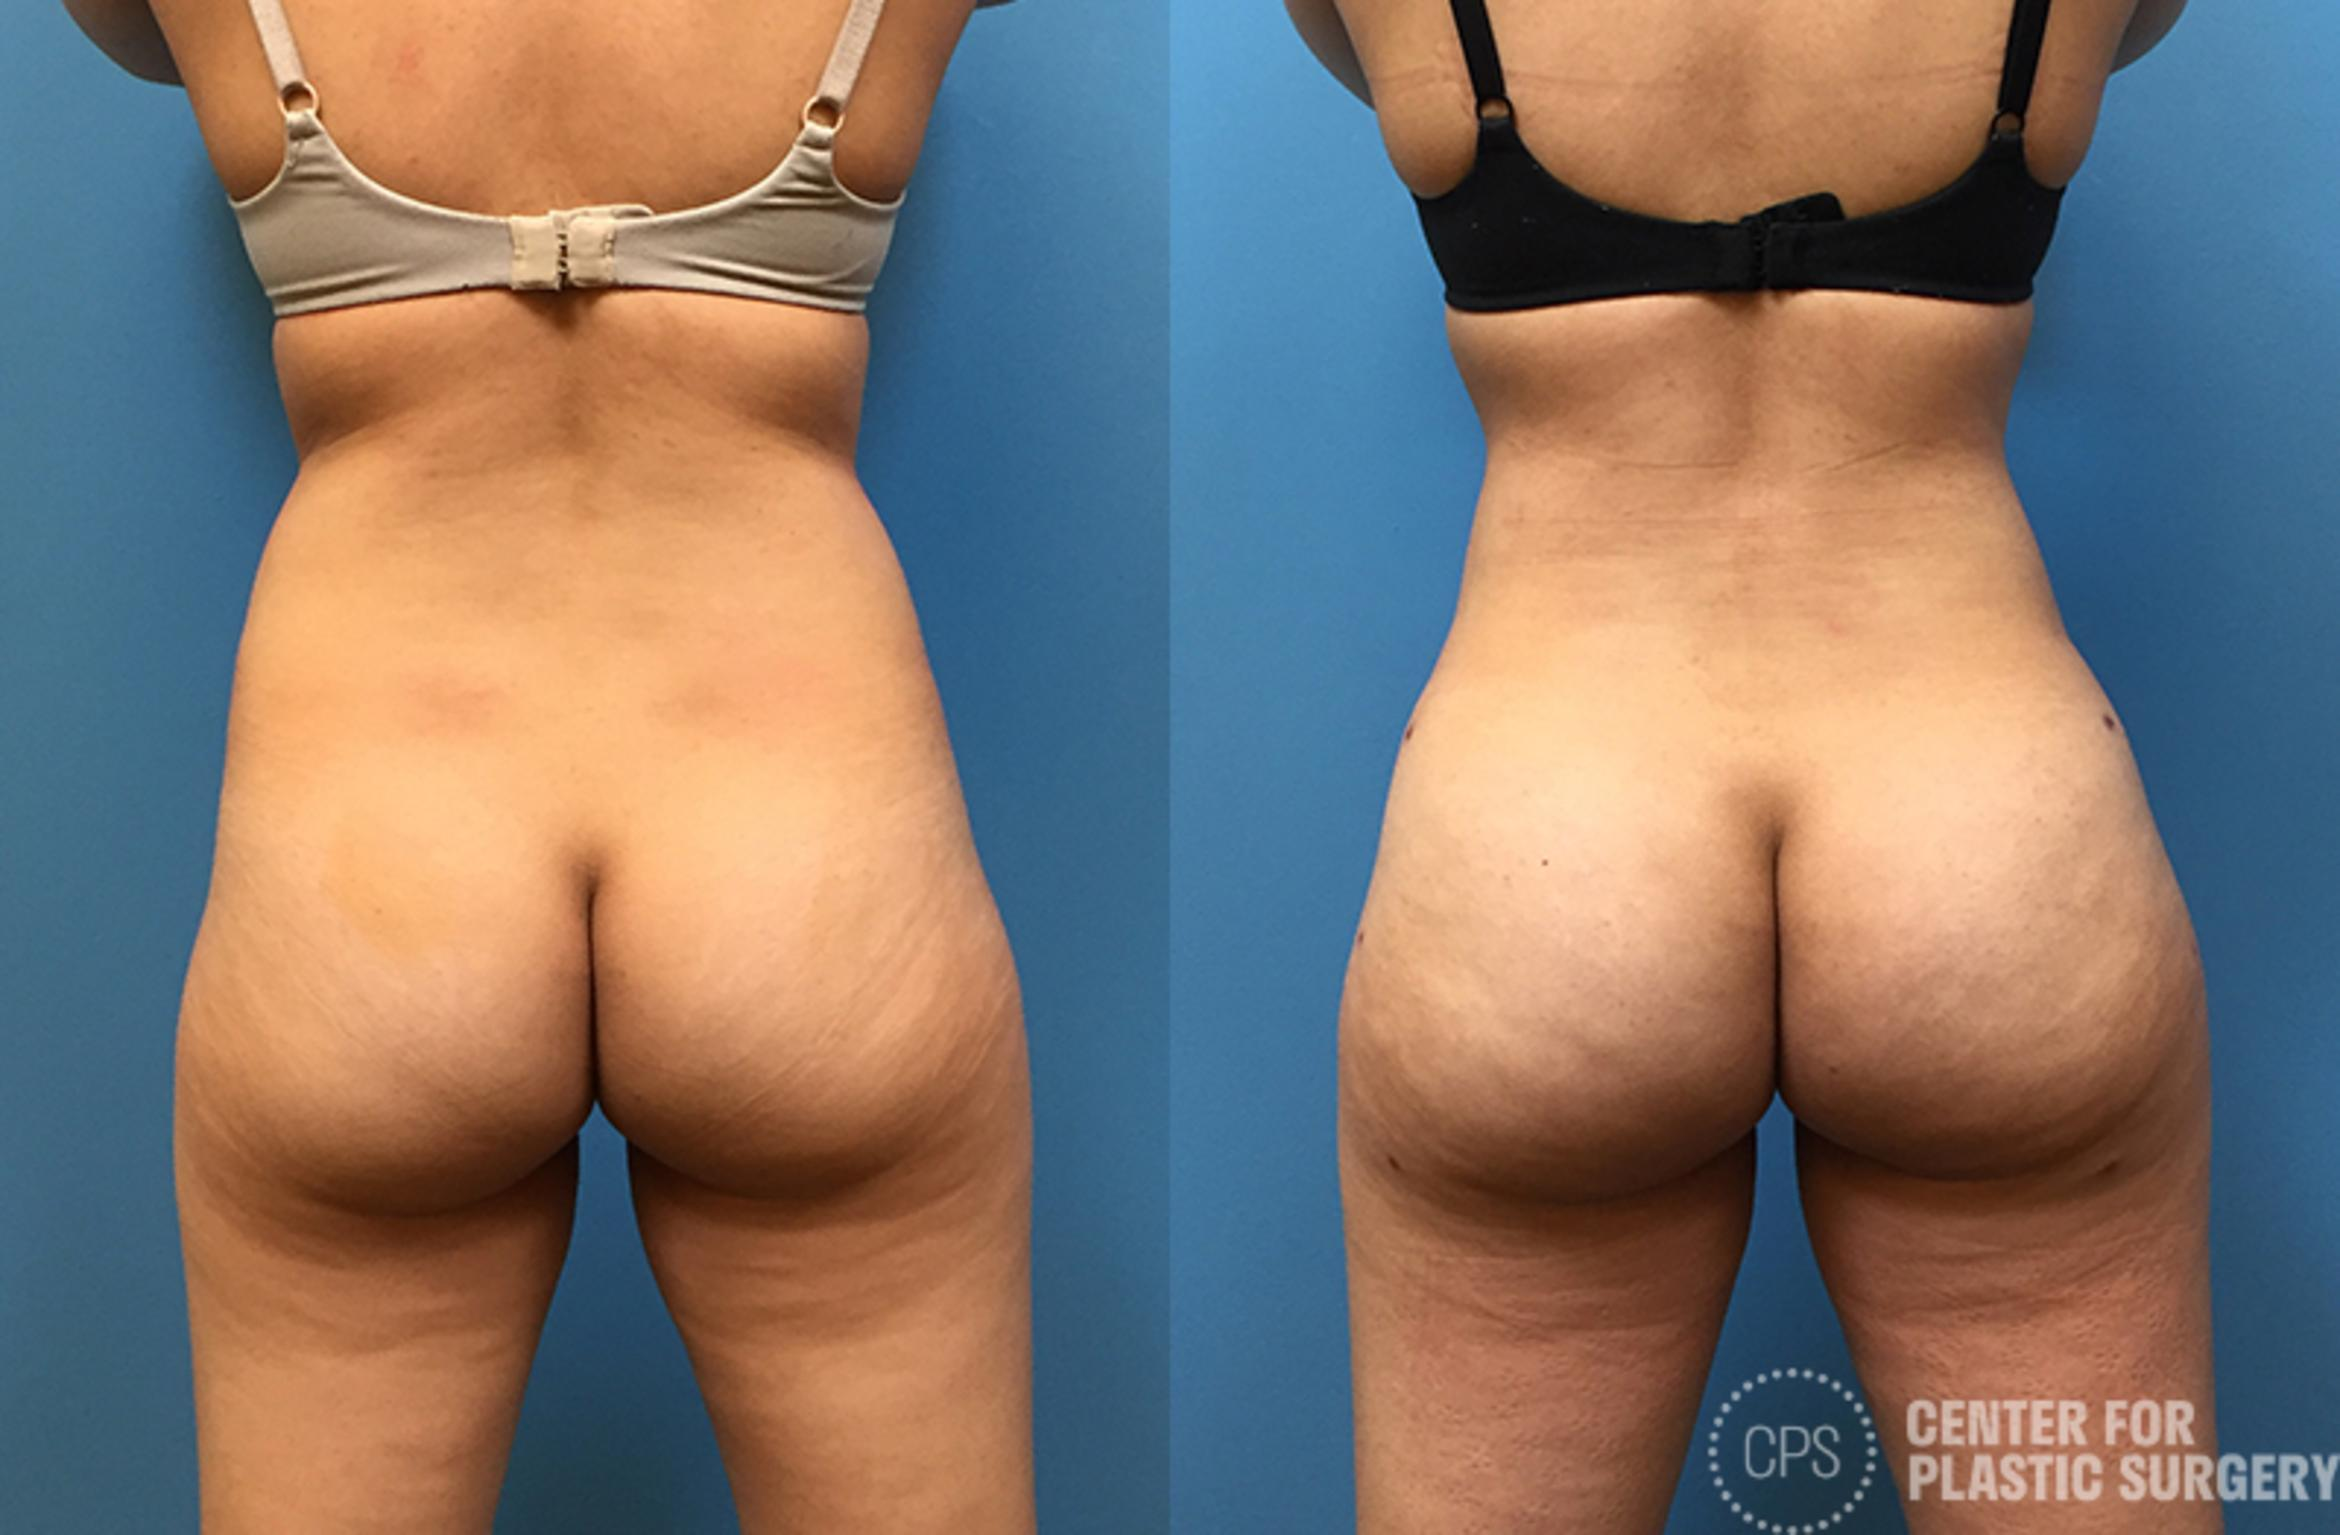 Brazilian Butt Lift Case 73 Before & After Back | Annandale, VA & Chevy Chase, MD, Washington D.C. Metropolitan Area | Center for Plastic Surgery